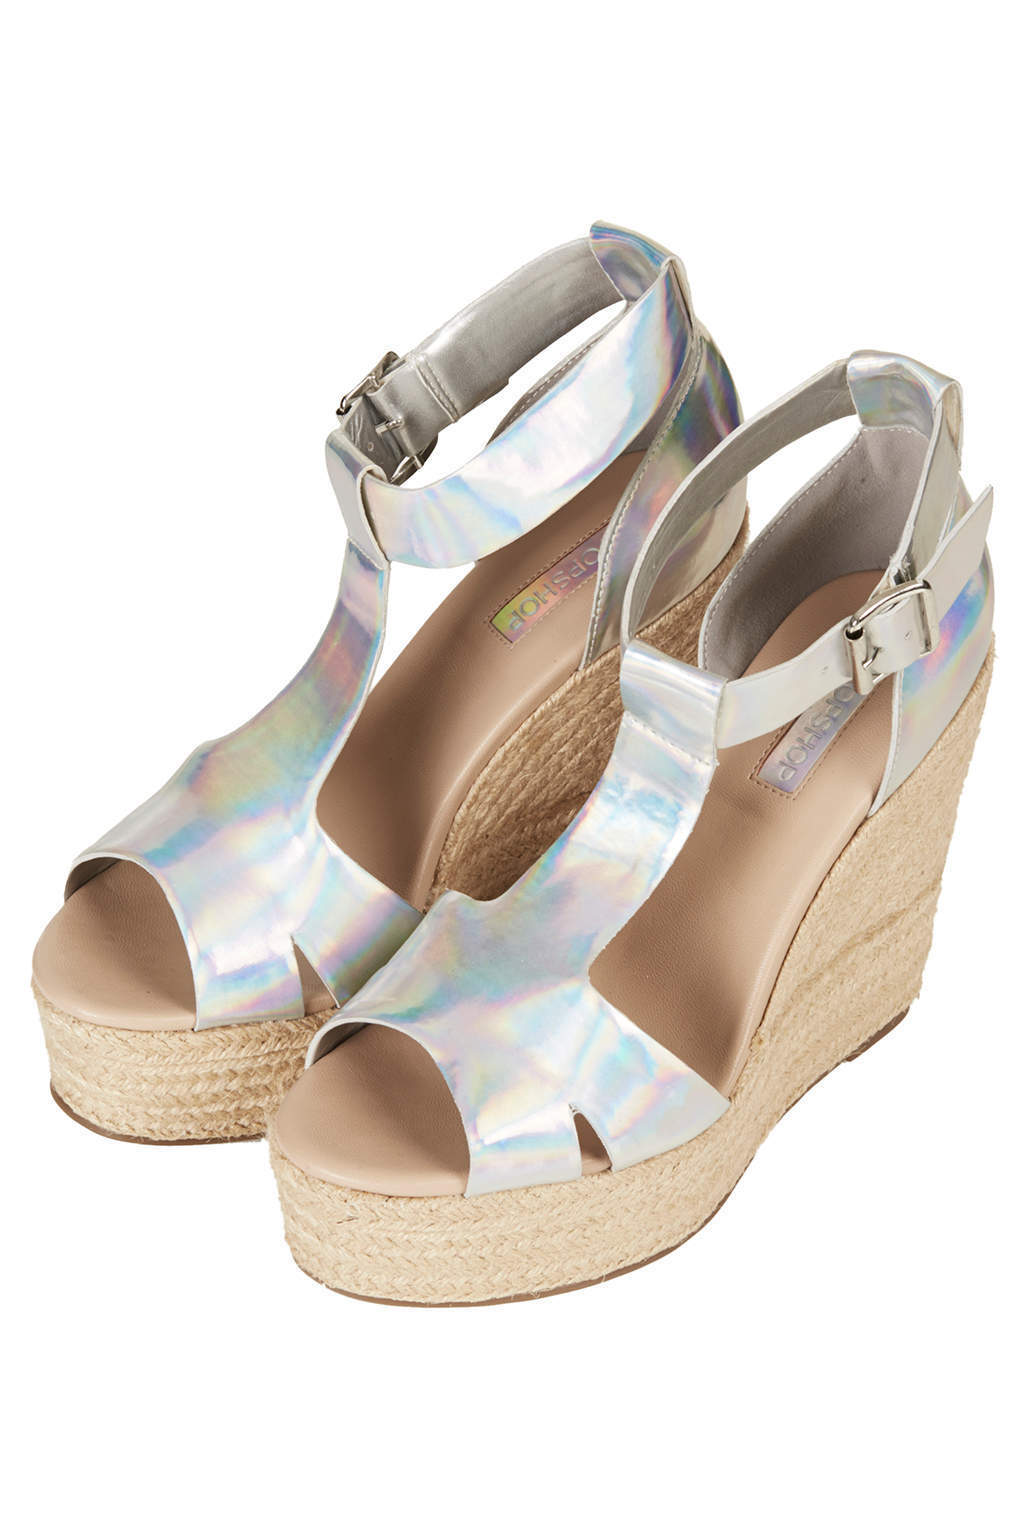 TOPSHOP ( WELL T-bar espadrilles in Silver UK 5 ( TOPSHOP New with box ) a940b3